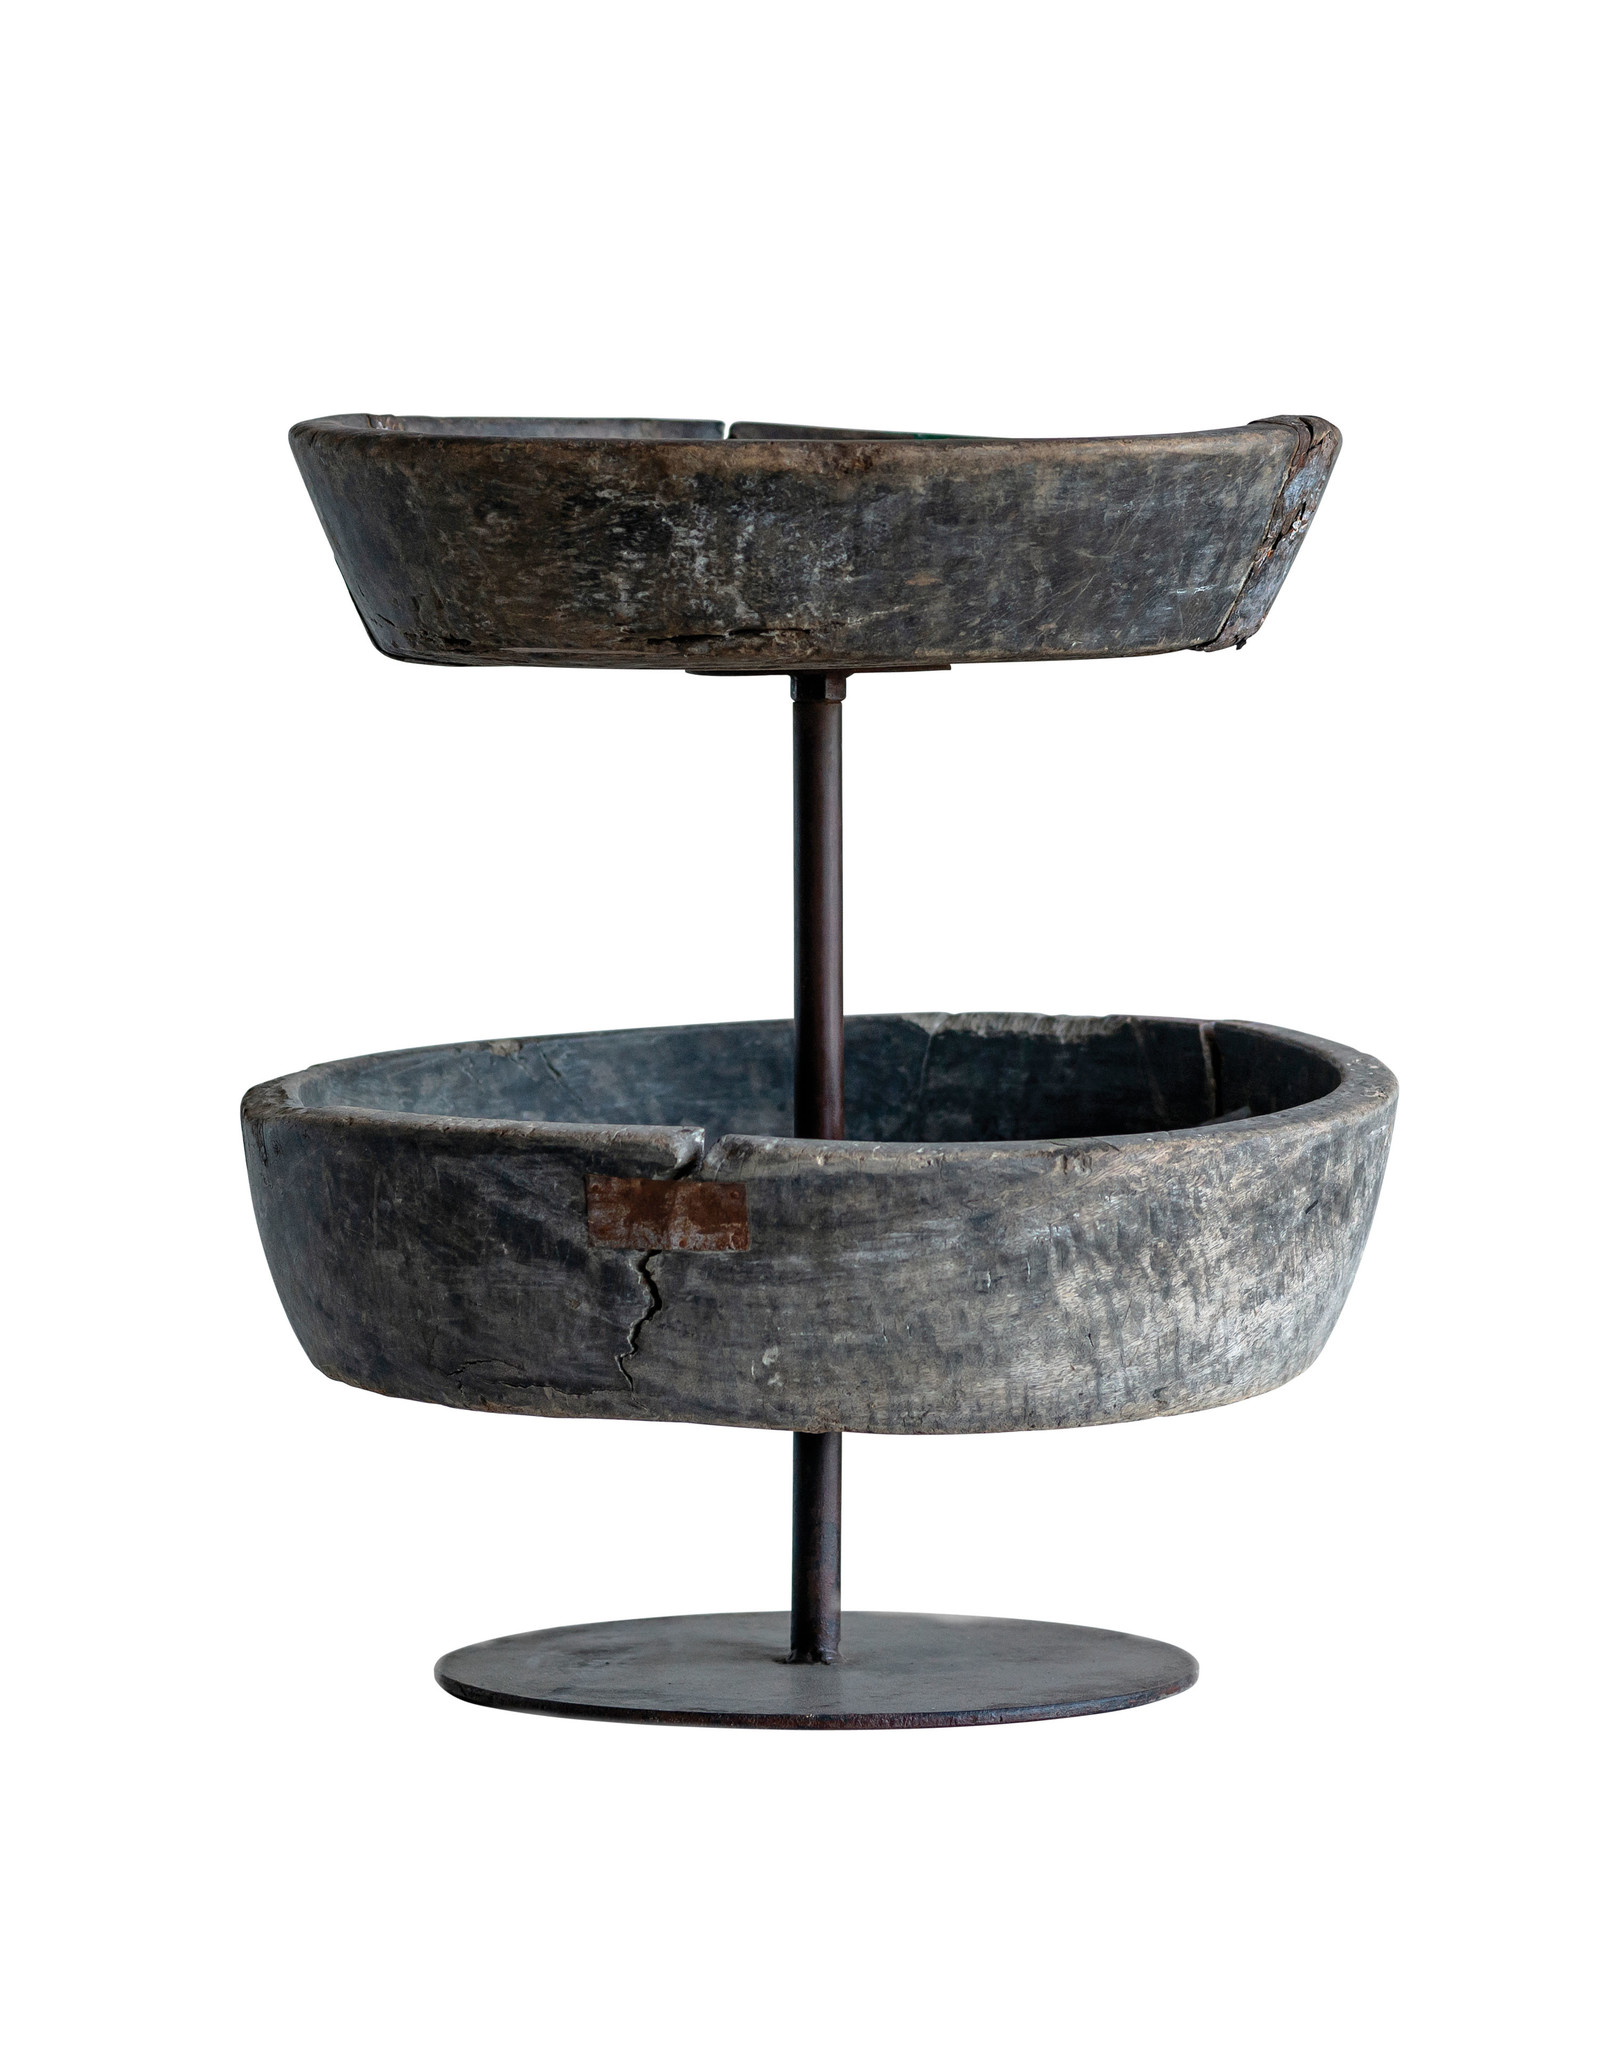 Found Decorative Reclaimed Wood & Metal 2-Tier Bowl